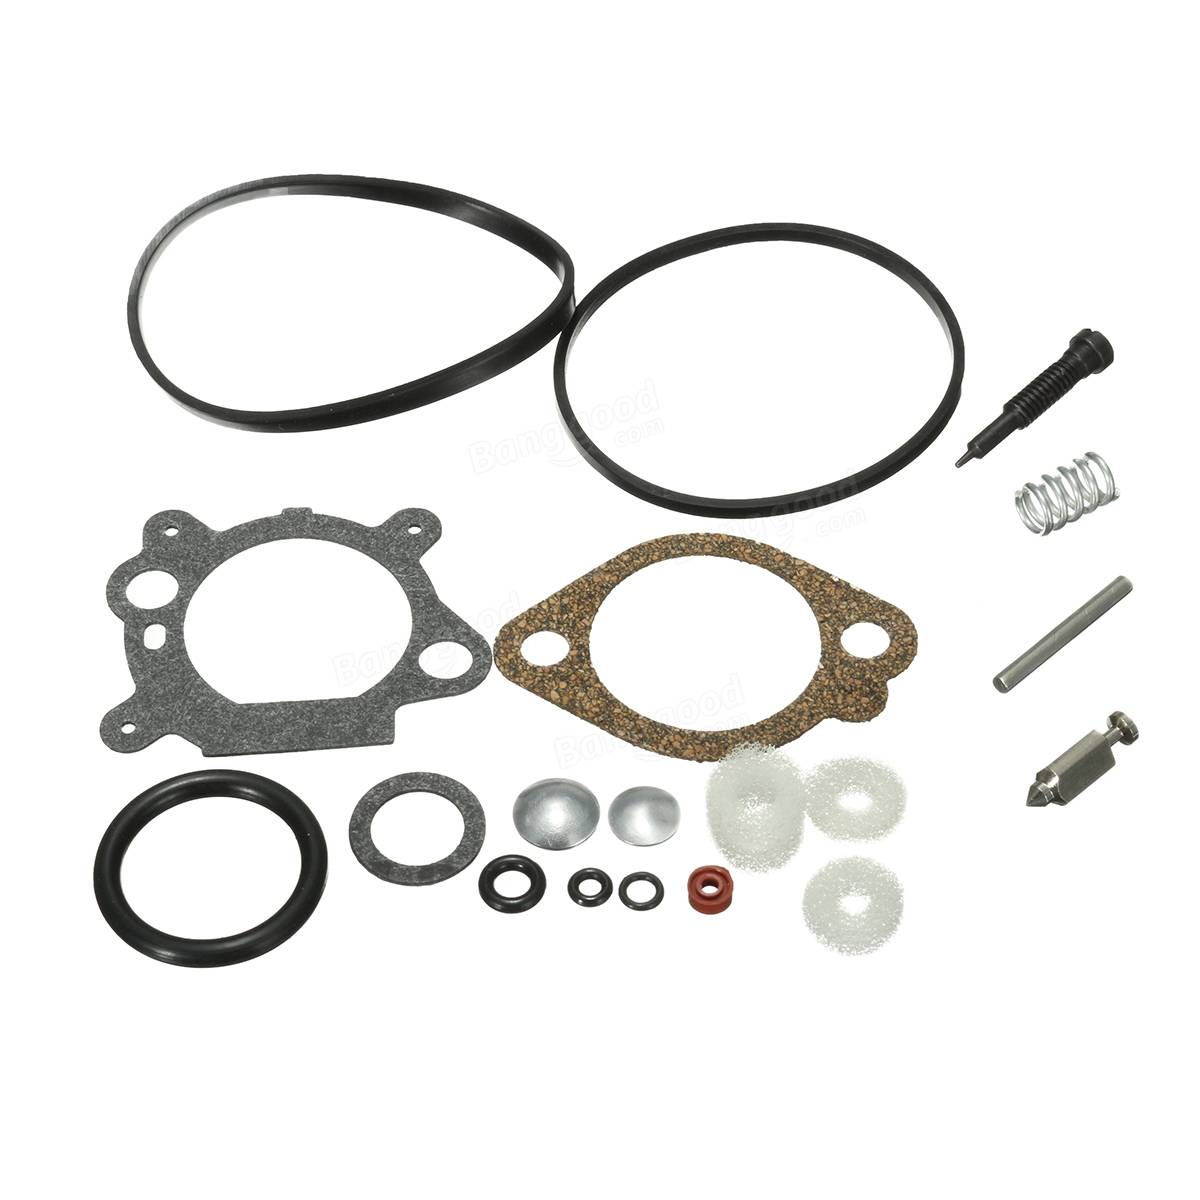 Carb Carburetor Rebuild Repair Kit For Briggs & Stratton 492495 493762 498260